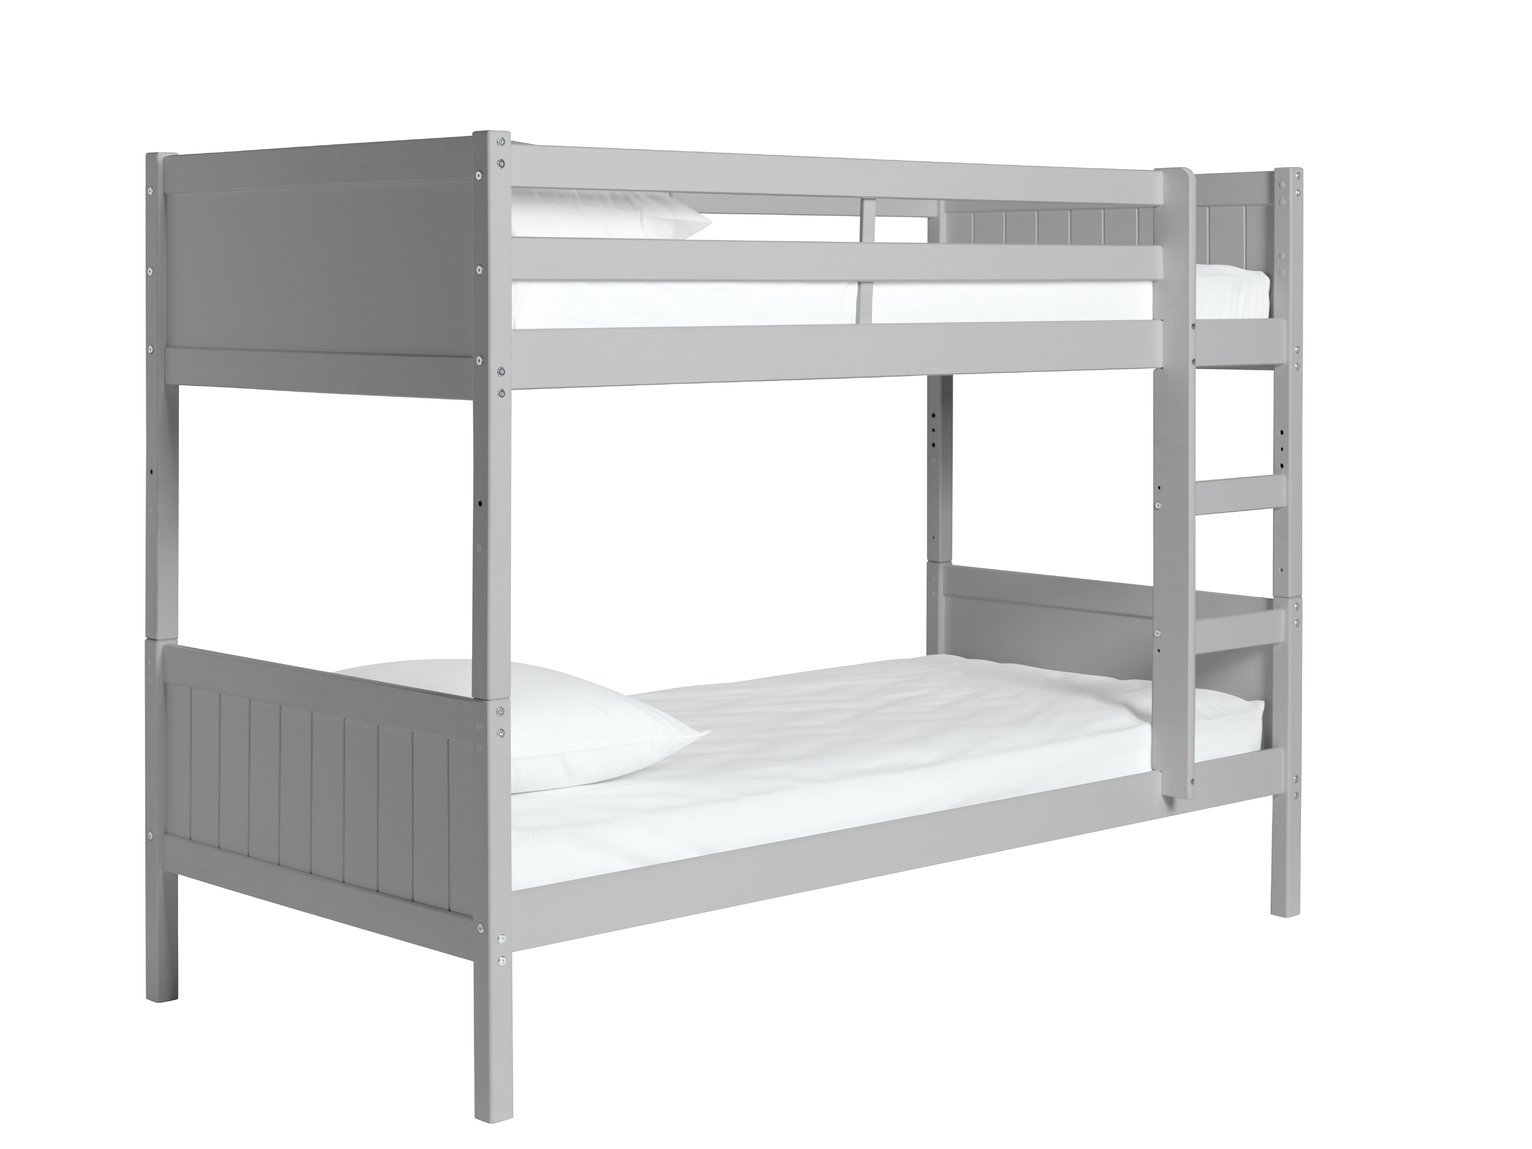 Buy Argos Home Kids Detachable Bunk Bed With 2 Mattresses Grey